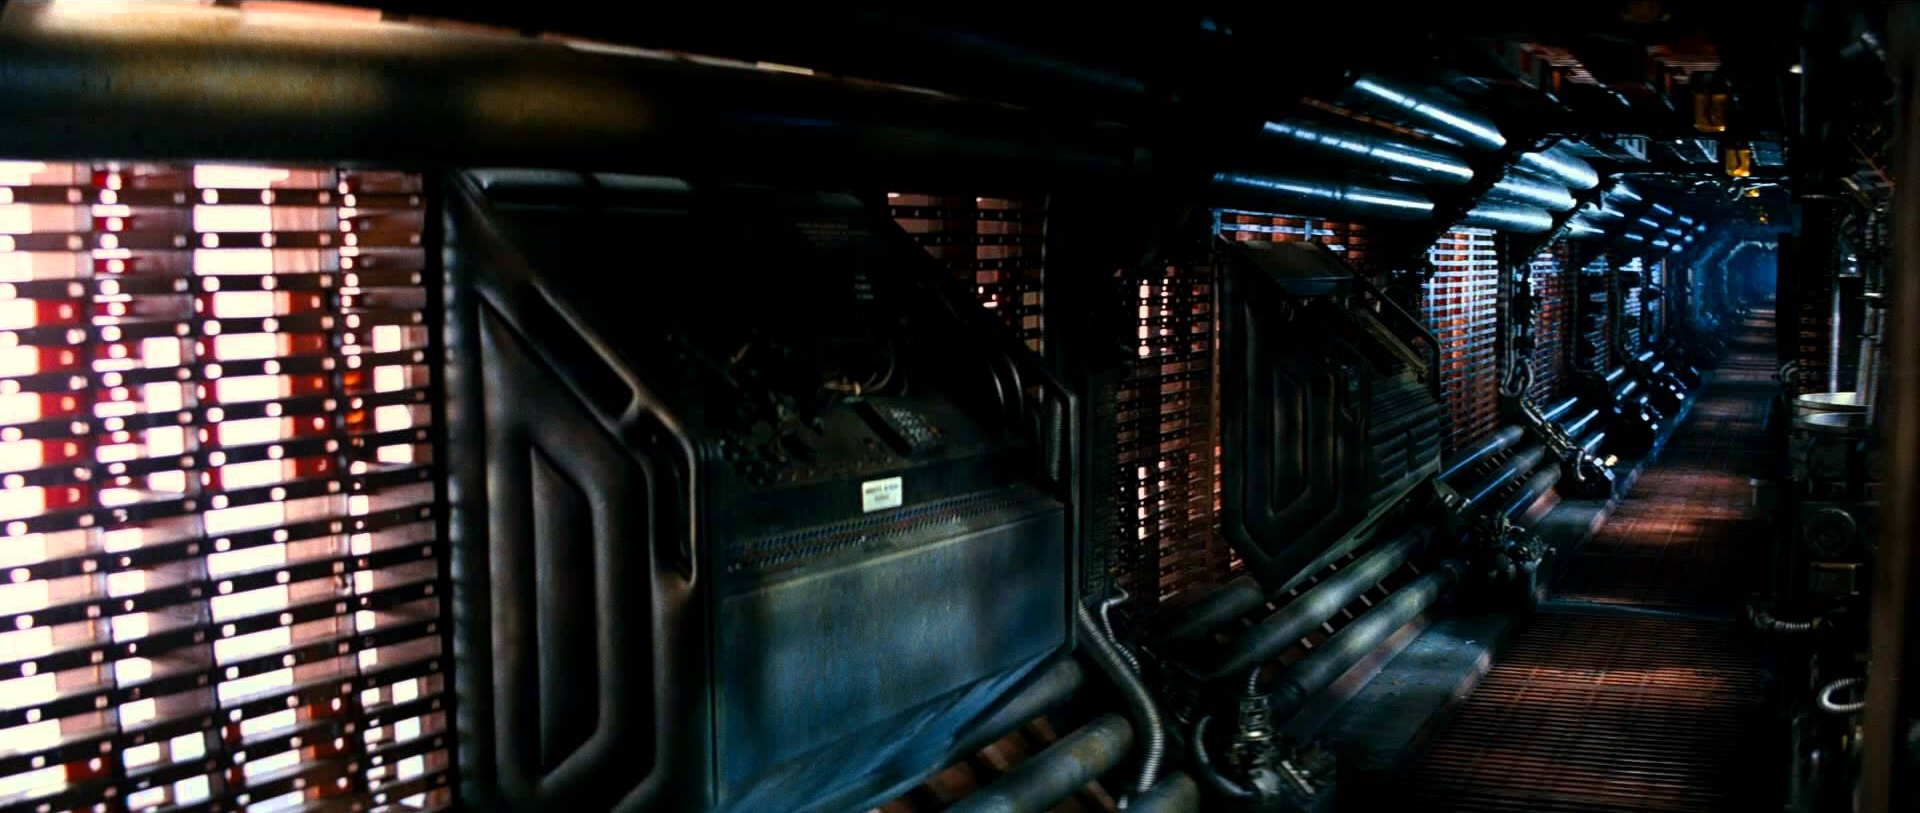 Alien, dir. Ridley Scott (1979). The film that started it all for me.